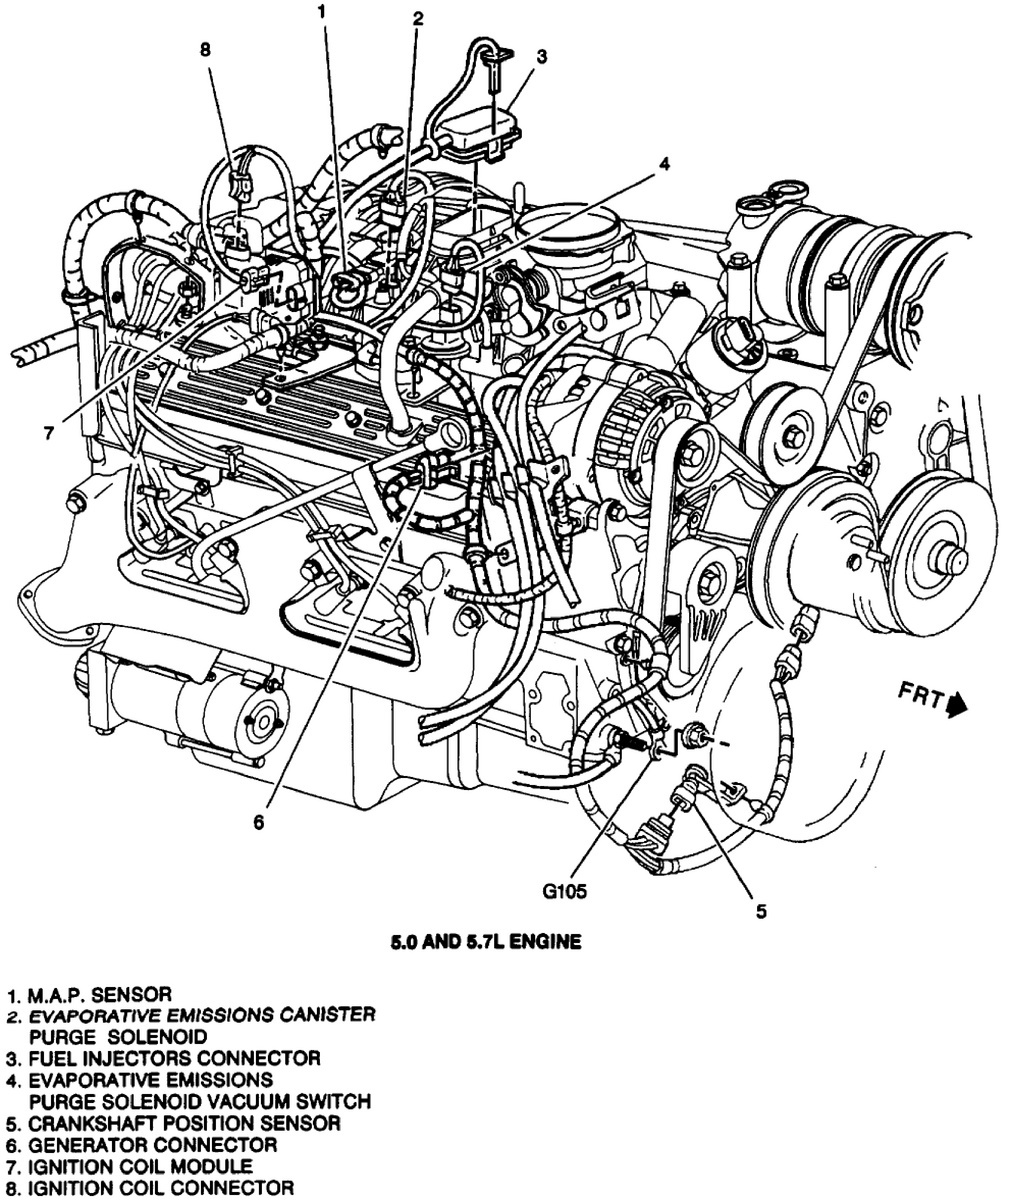 2007 Chevy Tahoe Engine Diagram Wiring Library For Chevrolet Silverado 99 Enthusiast Diagrams U2022 Rh Rasalibre Co